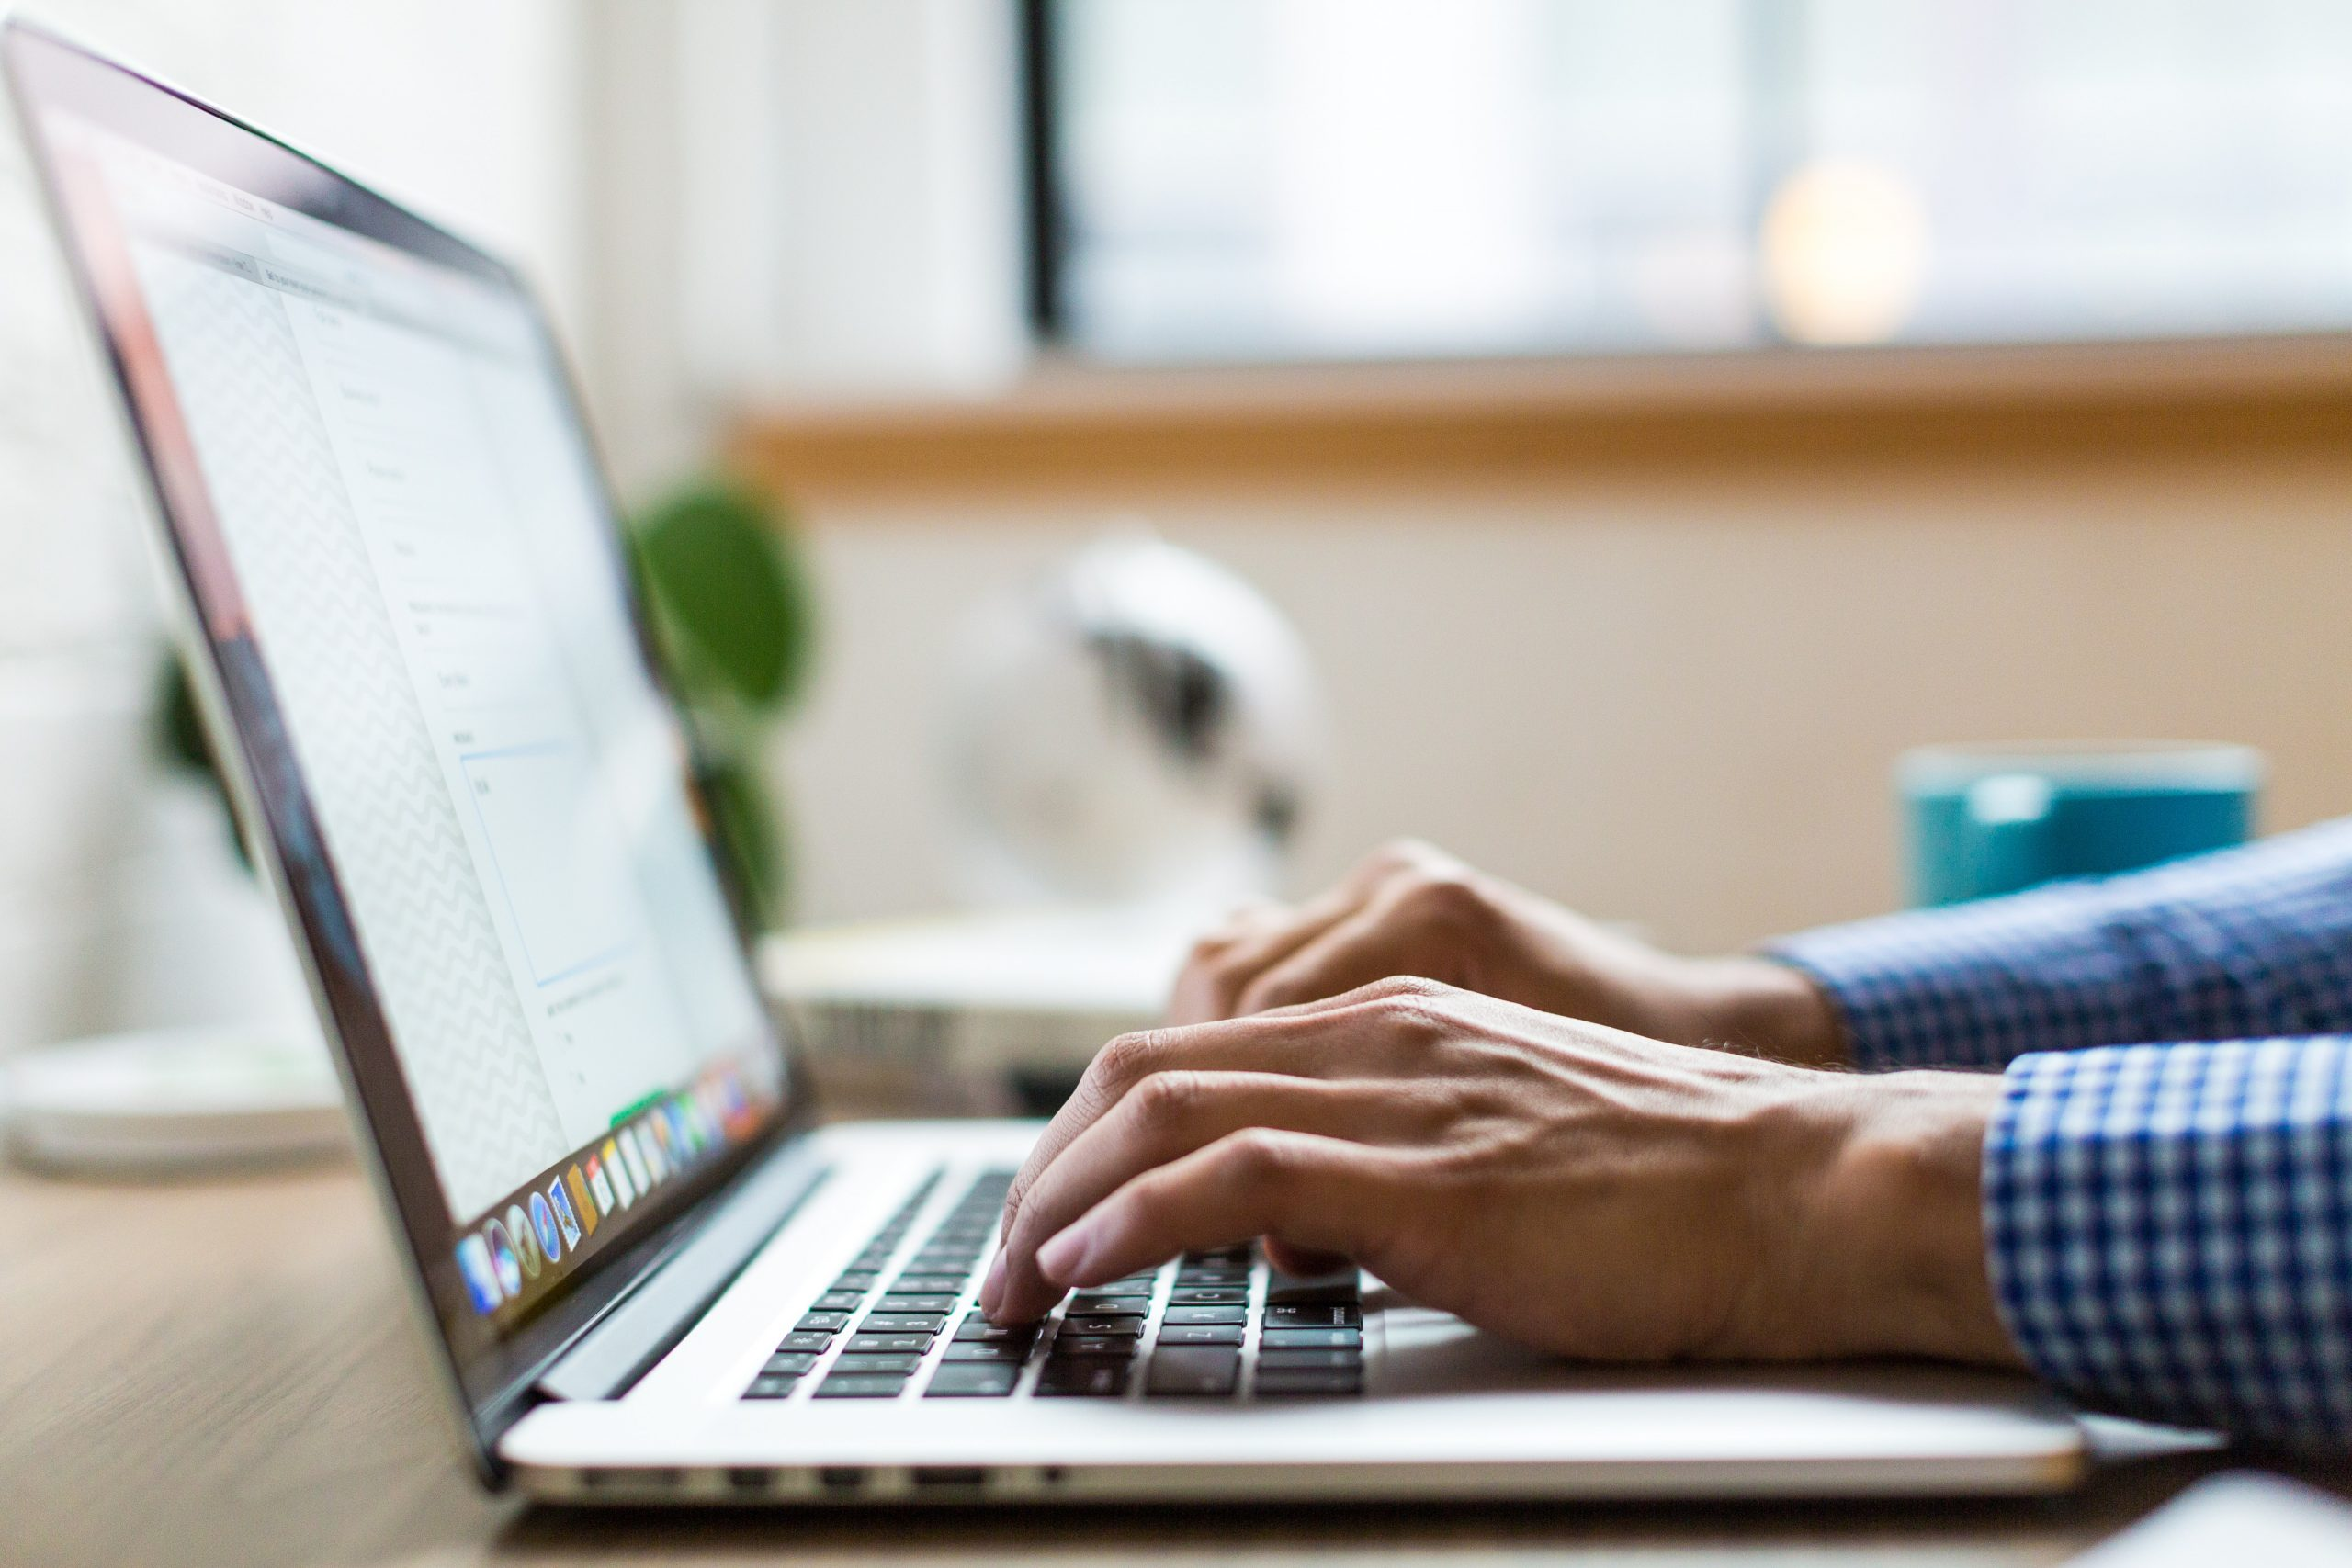 close up image of male hands typing on a laptop